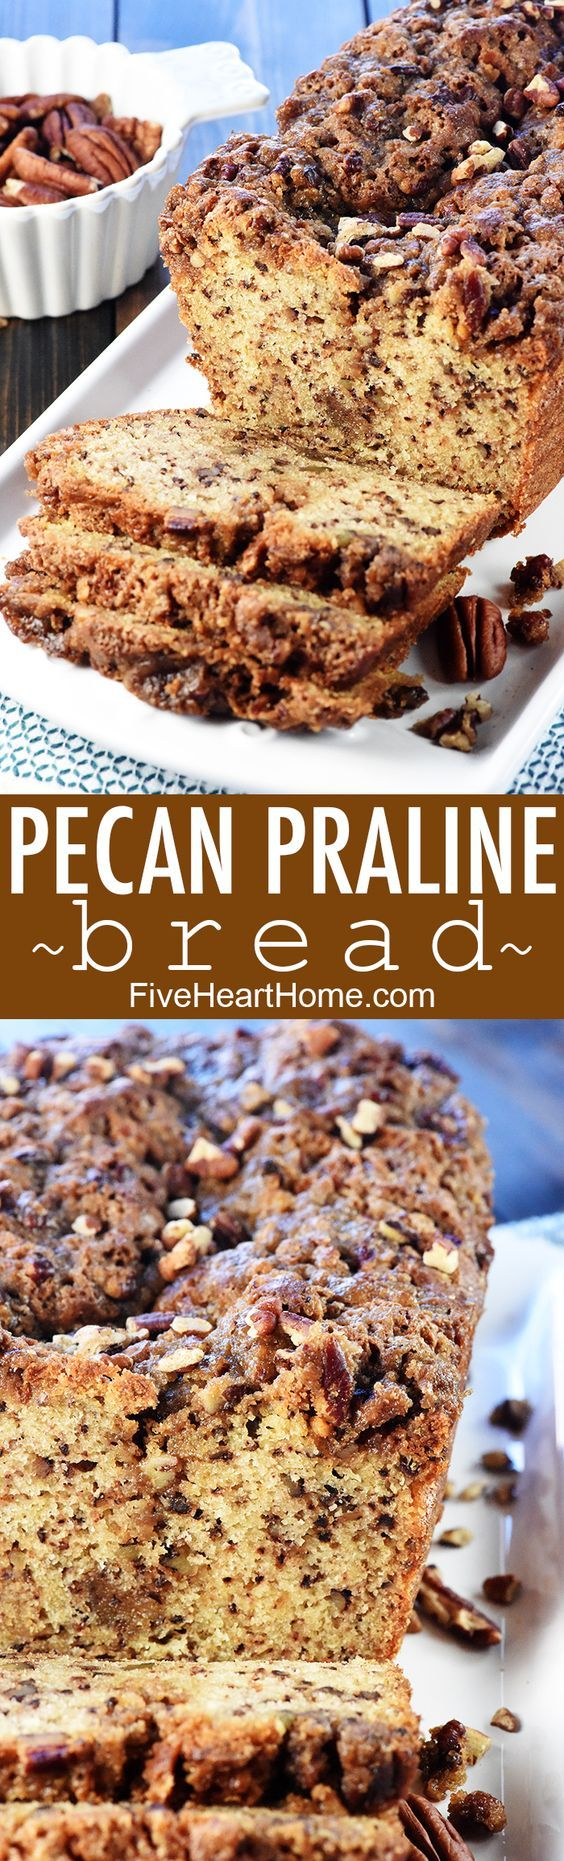 Pecan Praline Bread ~ a delicious quick bread recipe with a tender crumb and a ribbon of brown sugar pecans for added sweetness and crunch! | FiveHeartHome.com #pecans #praline #bread #quickbread #pecanrecipes #recipe #holiday #foodgift #fivehearthome